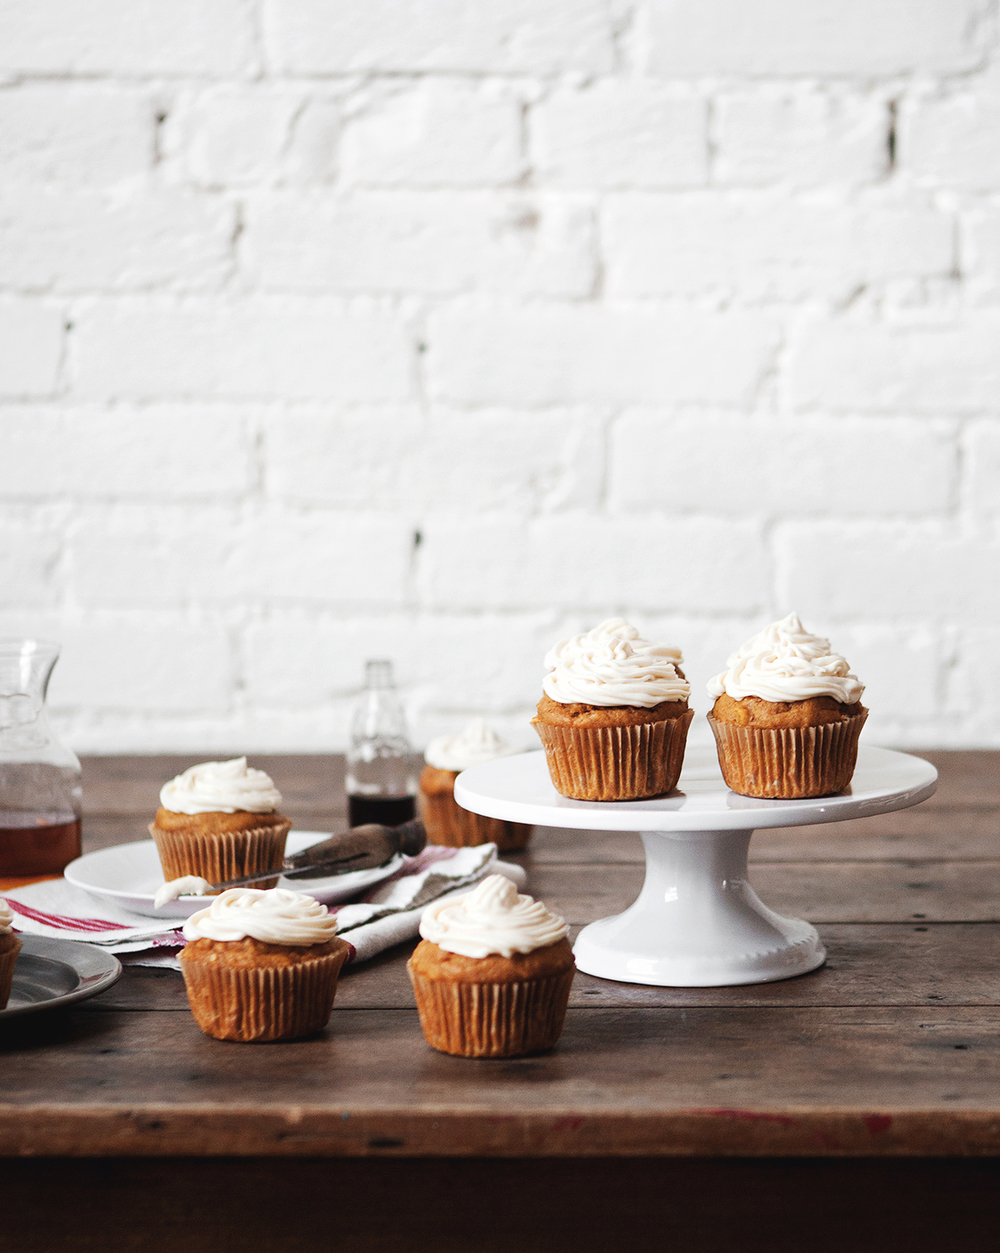 Pumpkin Spice Cupcakes with Maple Bourbon Cream Cheese Frosting